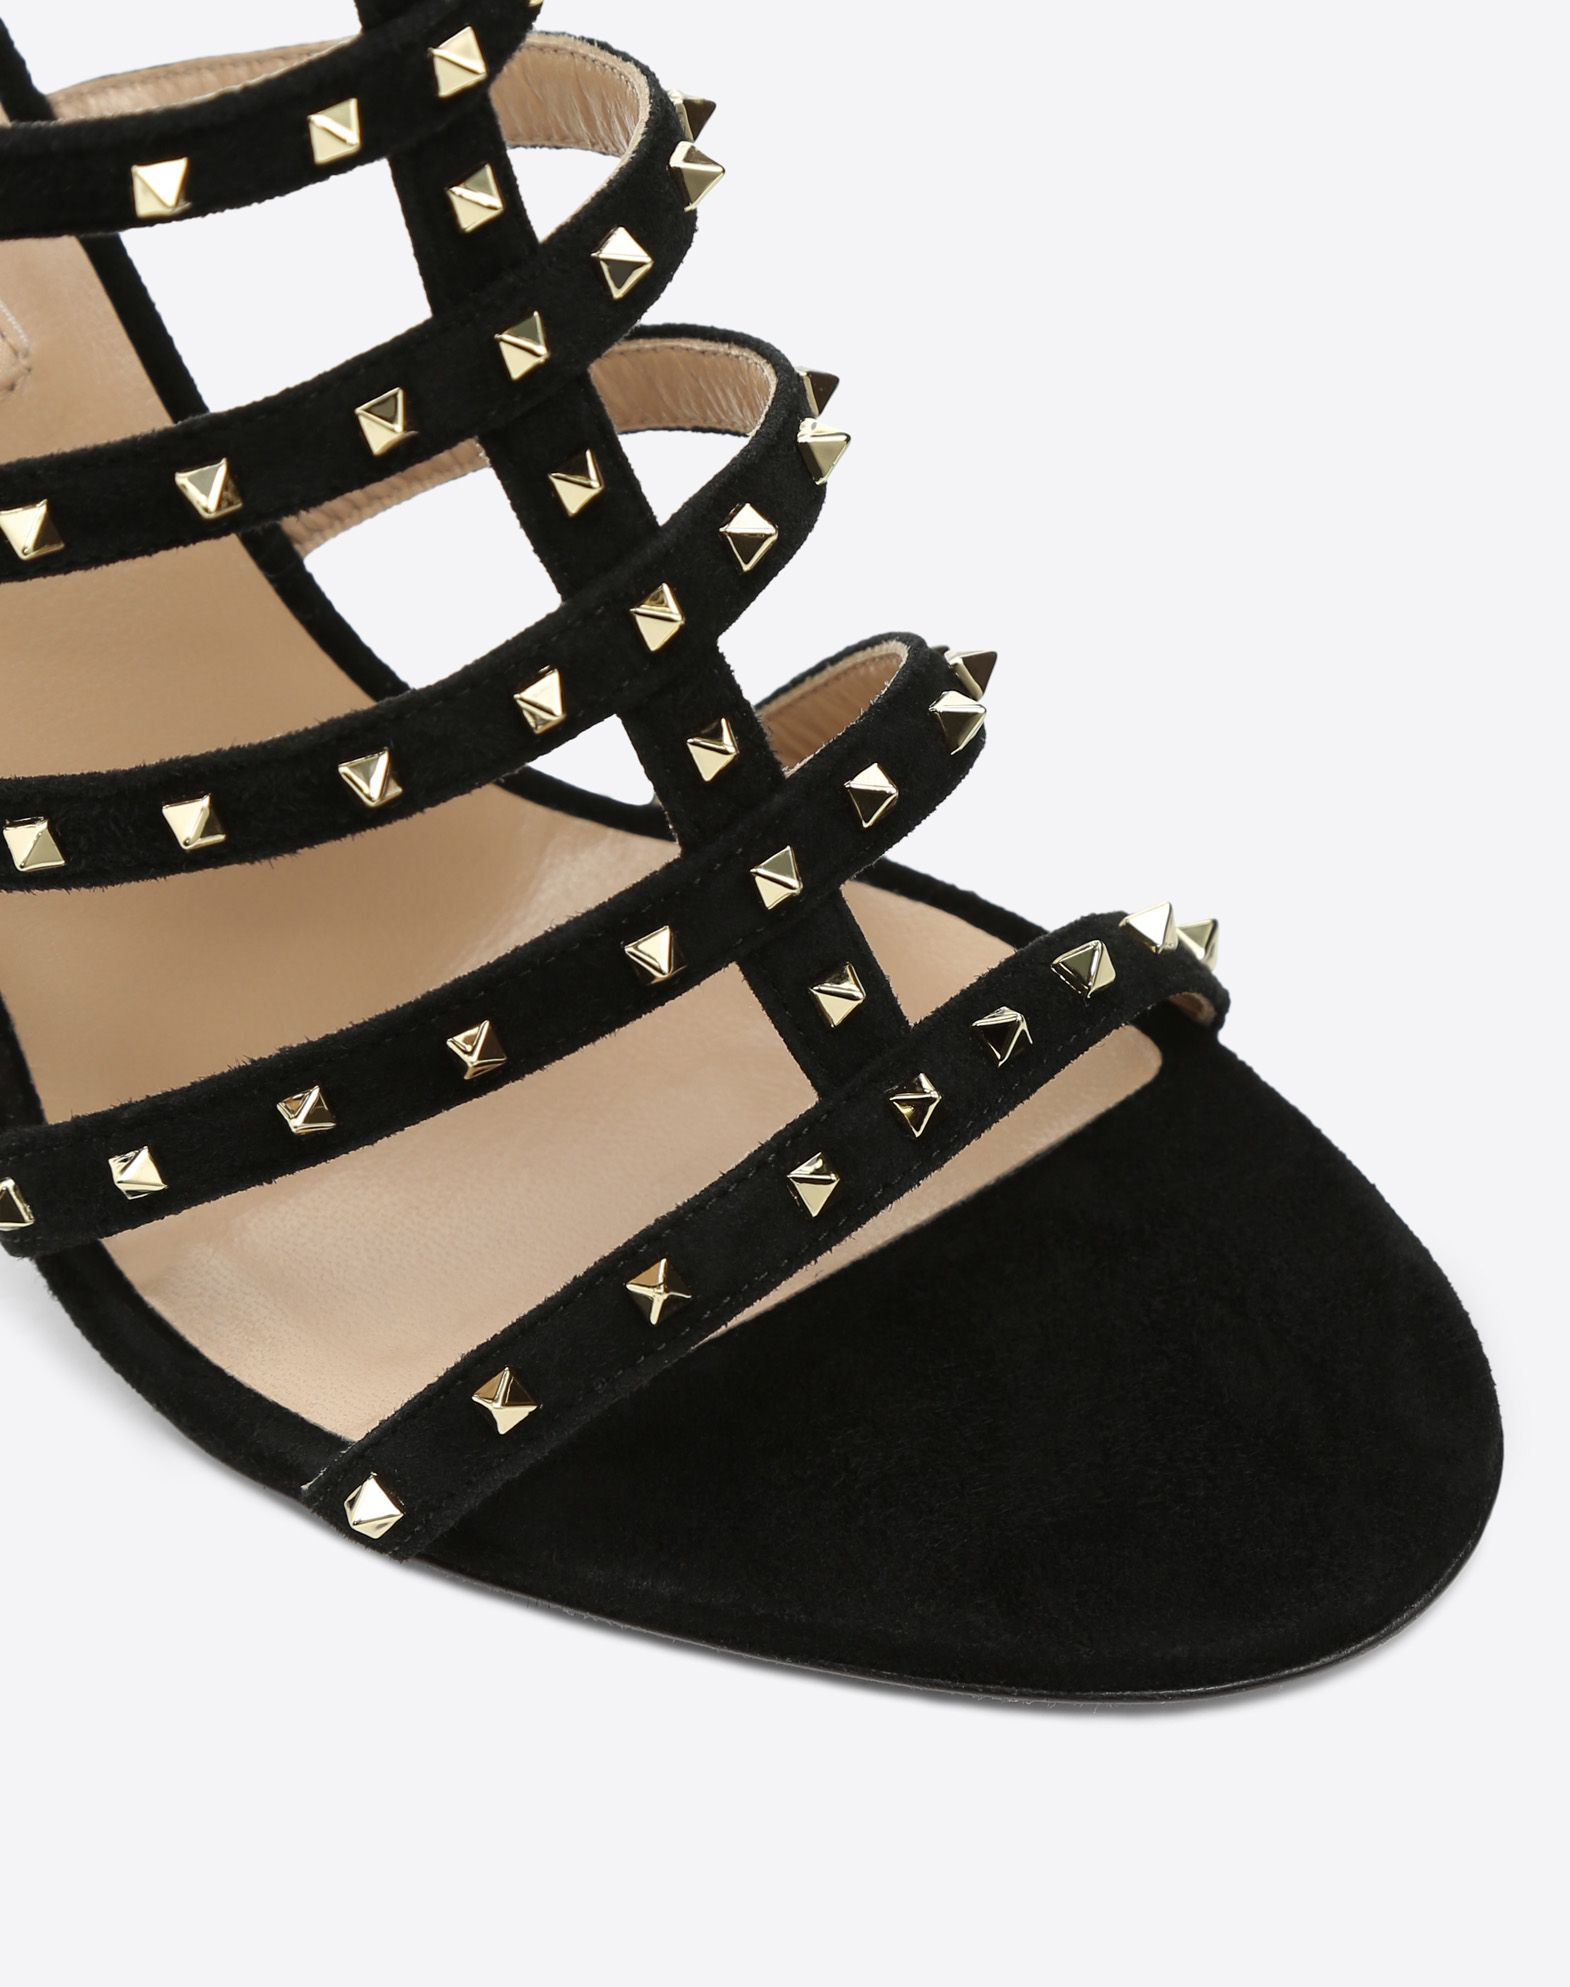 VALENTINO Studs Round toeline Solid color Leather sole Zip Covered heel Stiletto heel  45390748kl